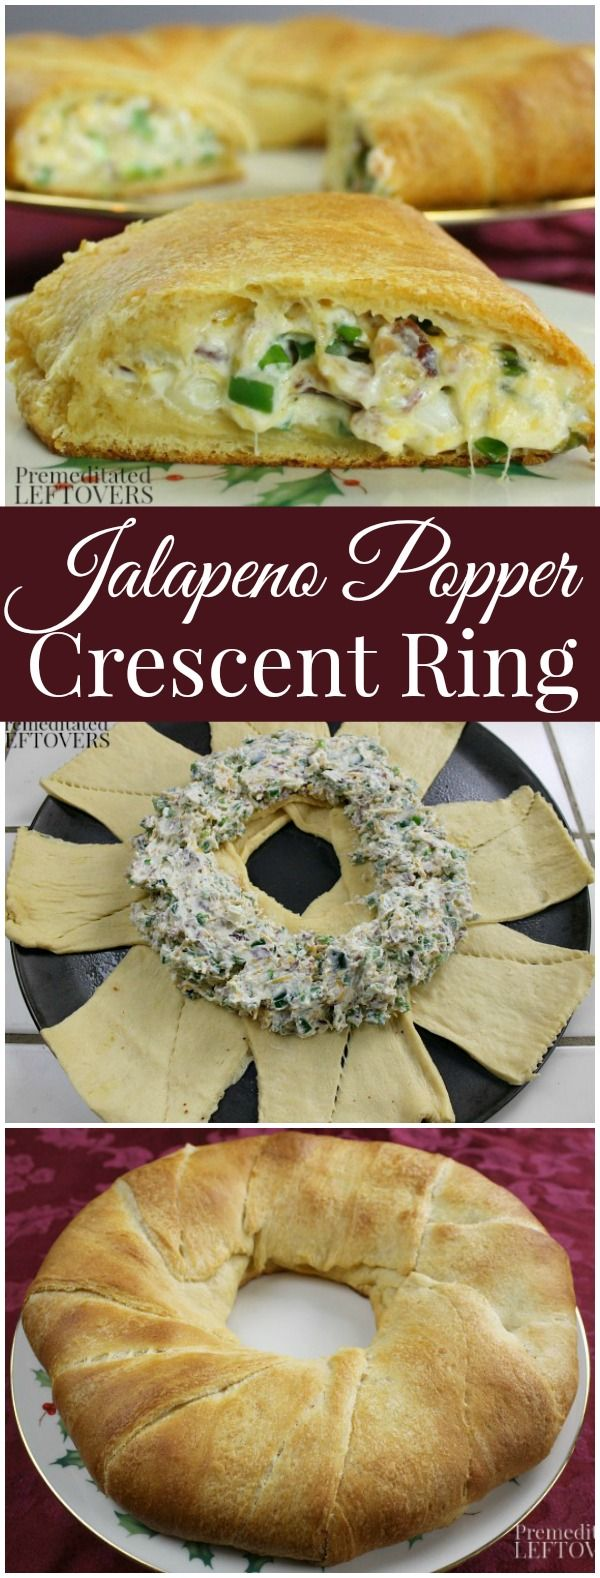 This Jalapeno Popper Crescent Ring is an easy holiday recipe. It only takes 7 ingredients and it can be prepped a day or two ahead of time and baked right before your party begins.